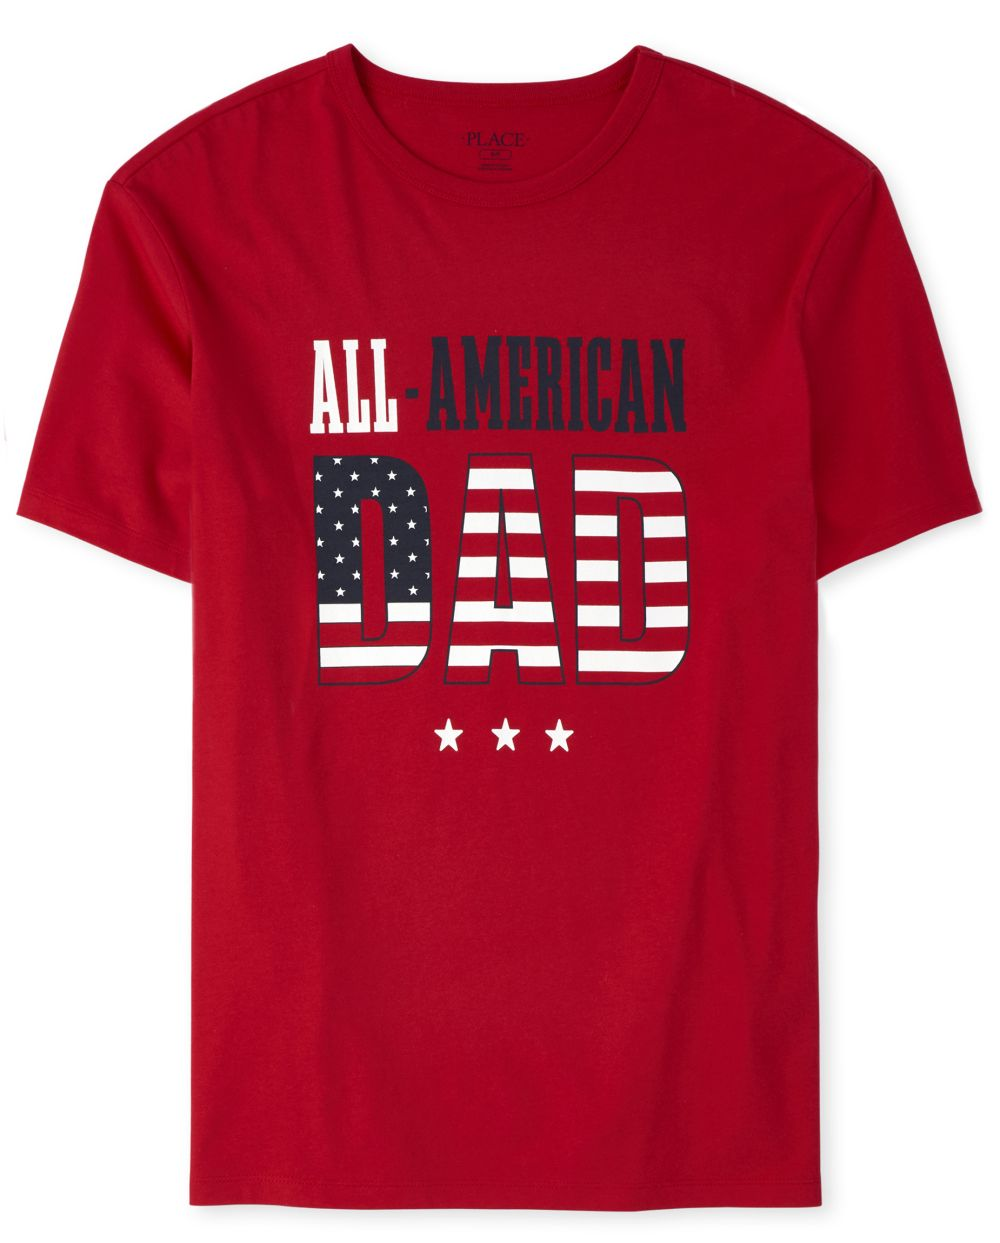 Mens Matching Family Americana All American Graphic Tee